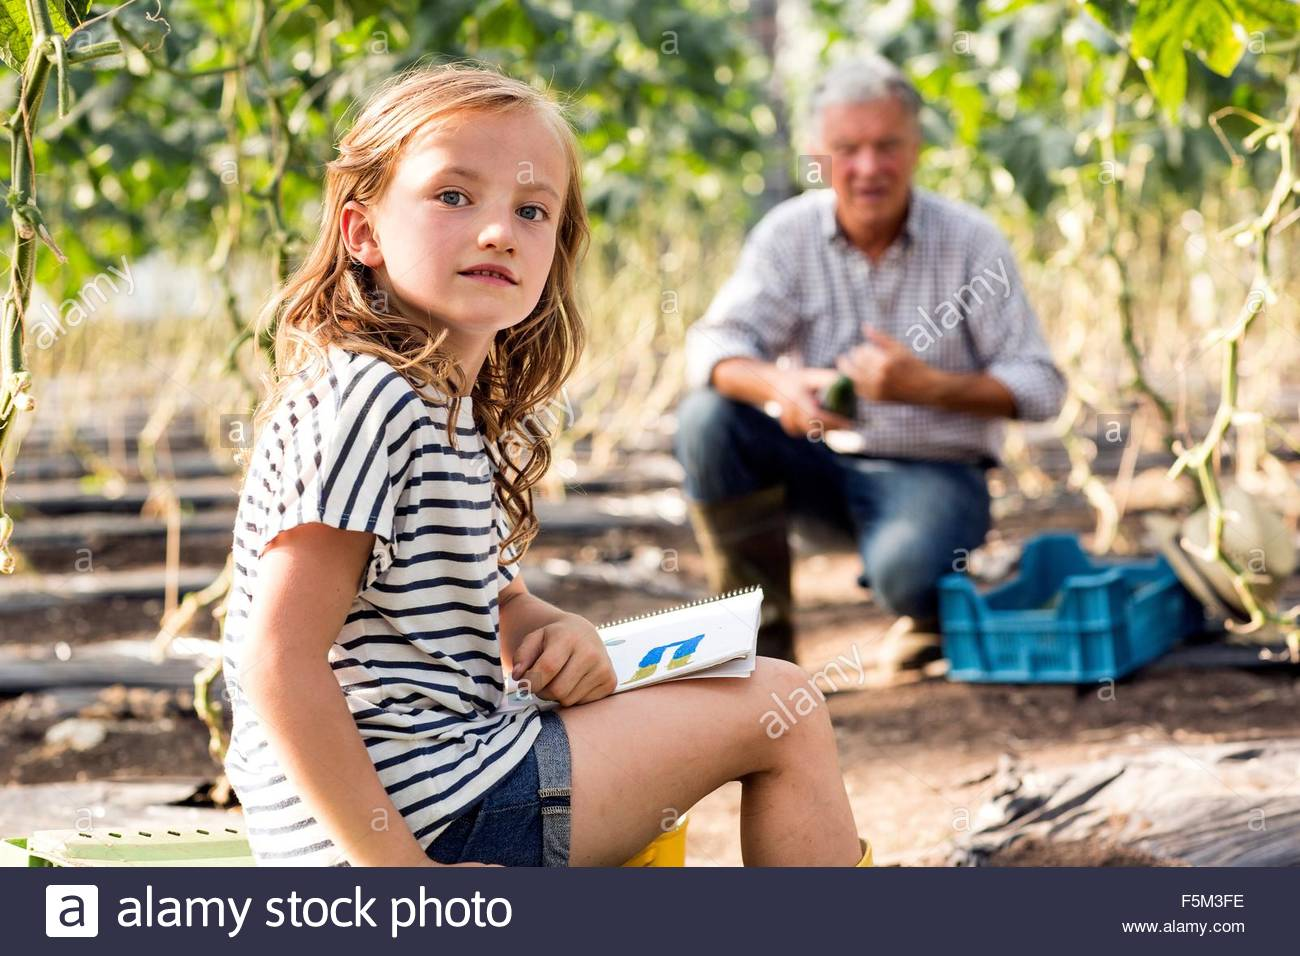 Girl sitting drawing while grandfather works looking at camera - Stock Image